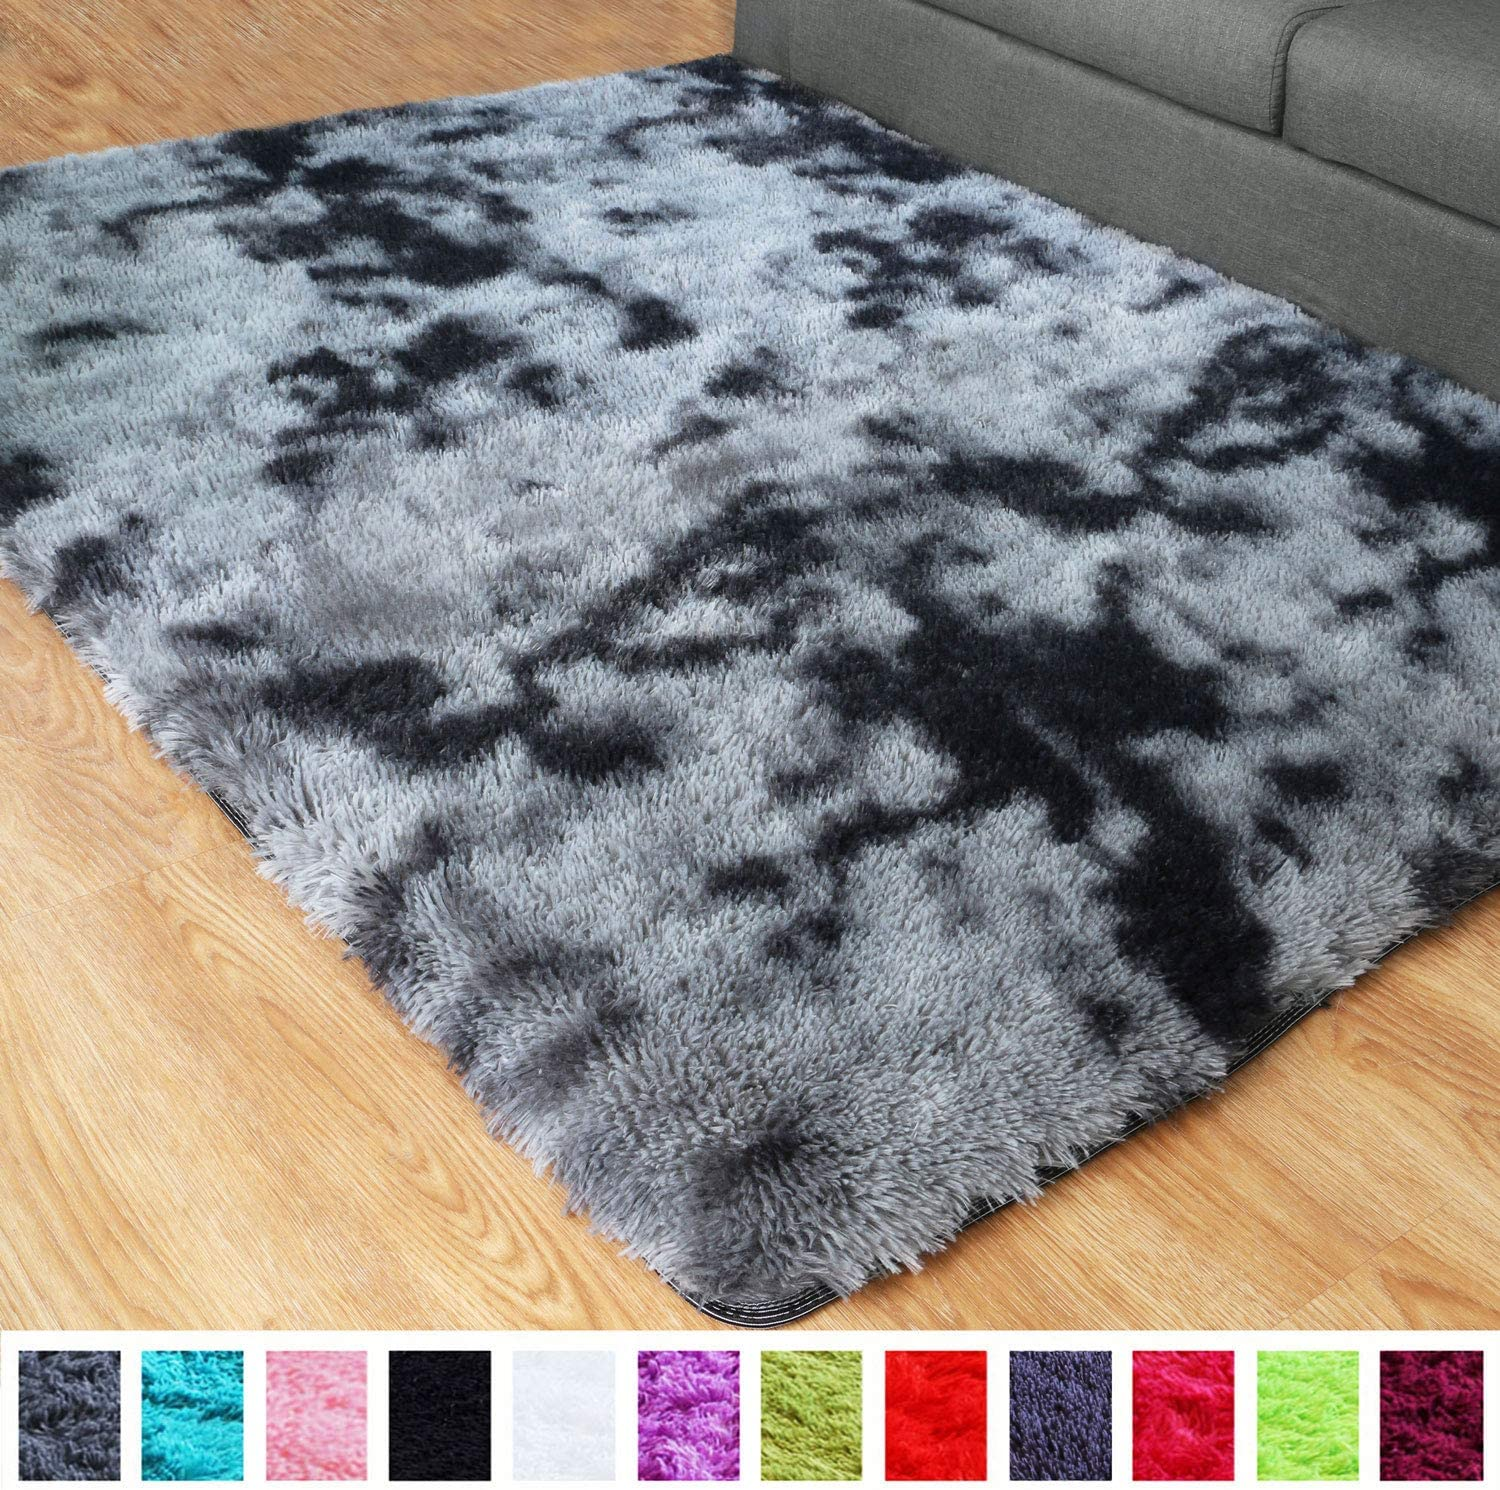 PAGISOFE Ultra Soft Abstract Area Fluffy Rug Black White Gray 4x5.3 Feet Carpet Thick Accent Rugs for Living Room Bedroom Dining Room Decor Multi Color with Rubber Backing (Grey and Black)